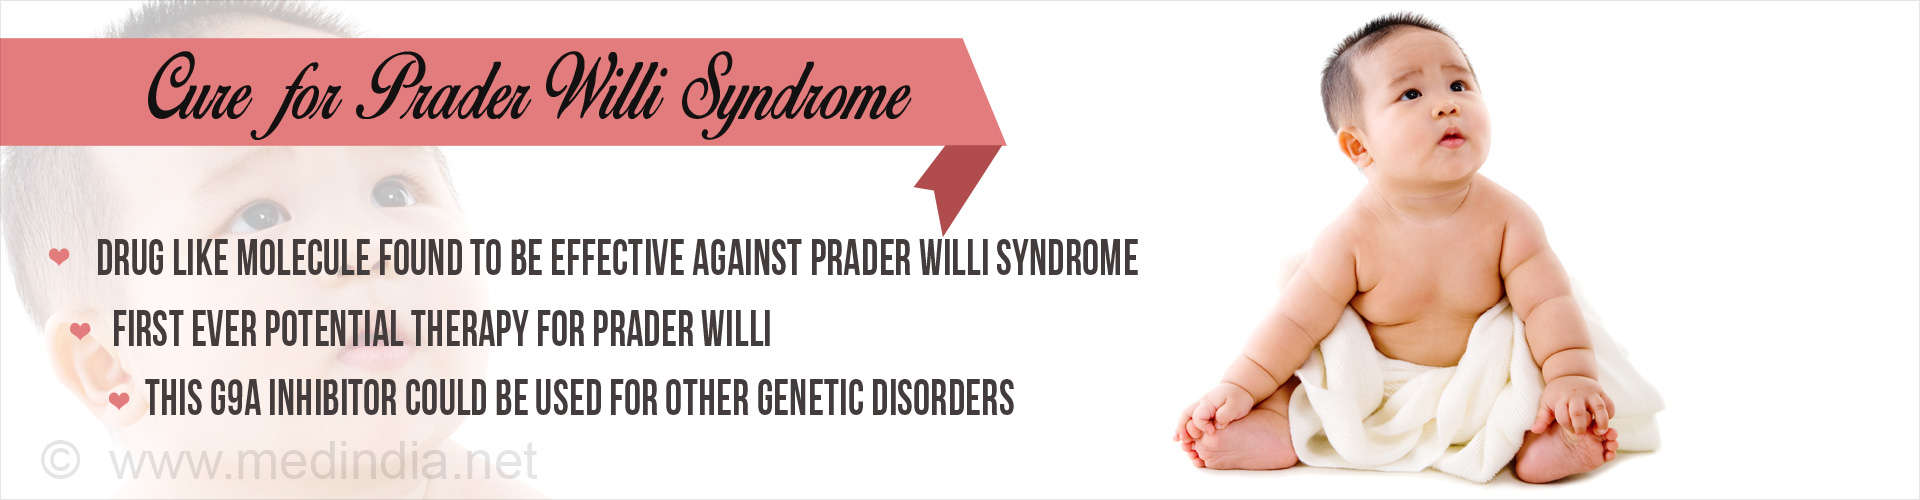 Newly Discovered Drug Molecule Offers Hope of Treatment for Prader-Willi Syndrome